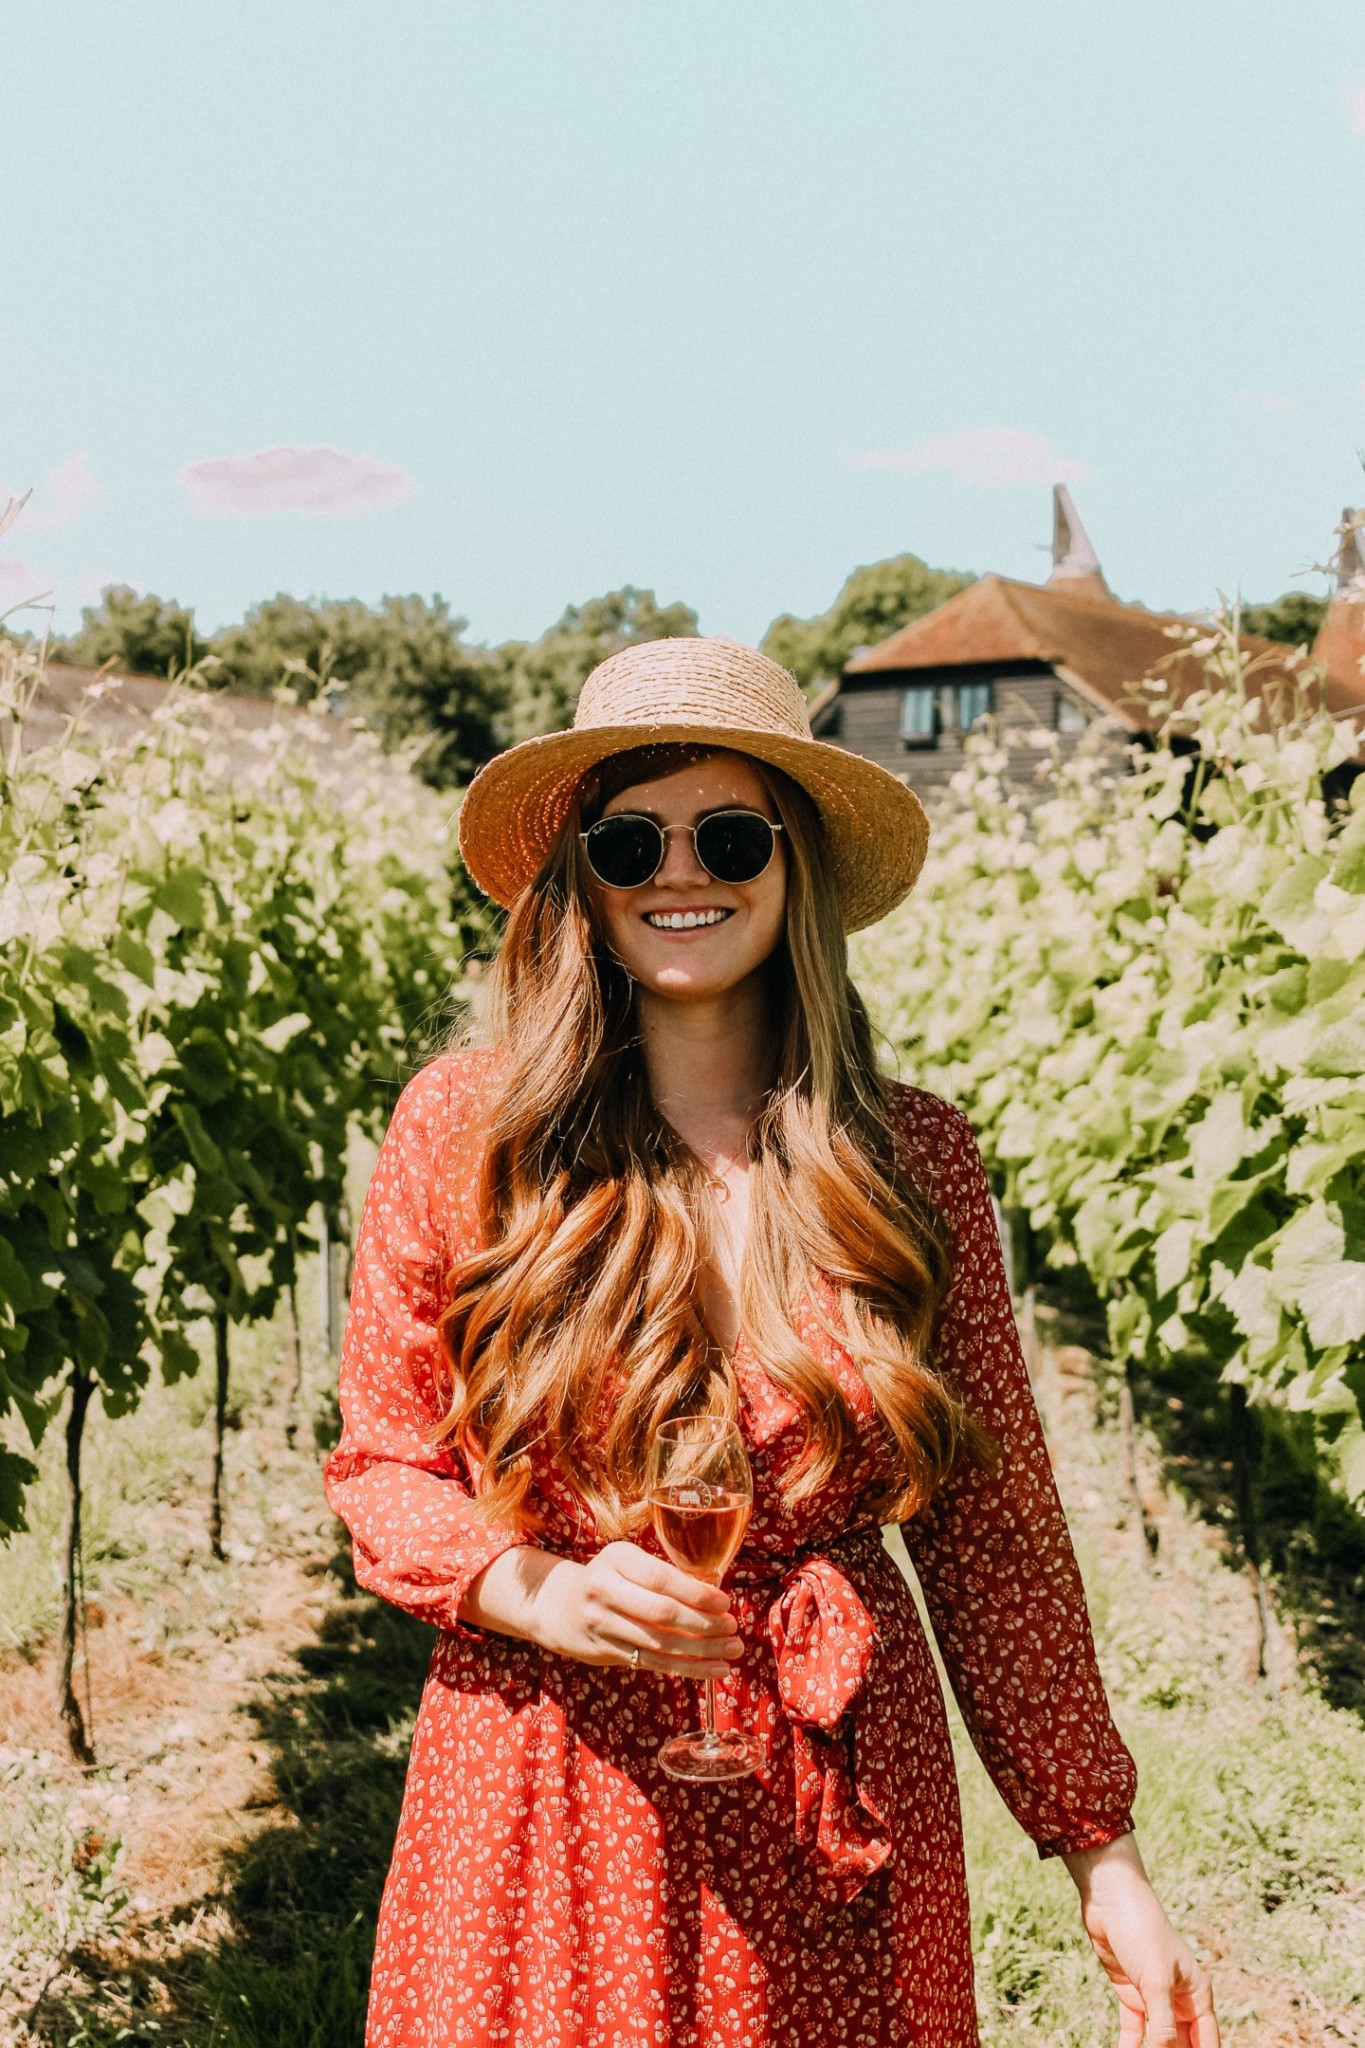 Lifestyle blogger Mollie Moore shares photos from a trip to Squerryes Vineyard in Kent